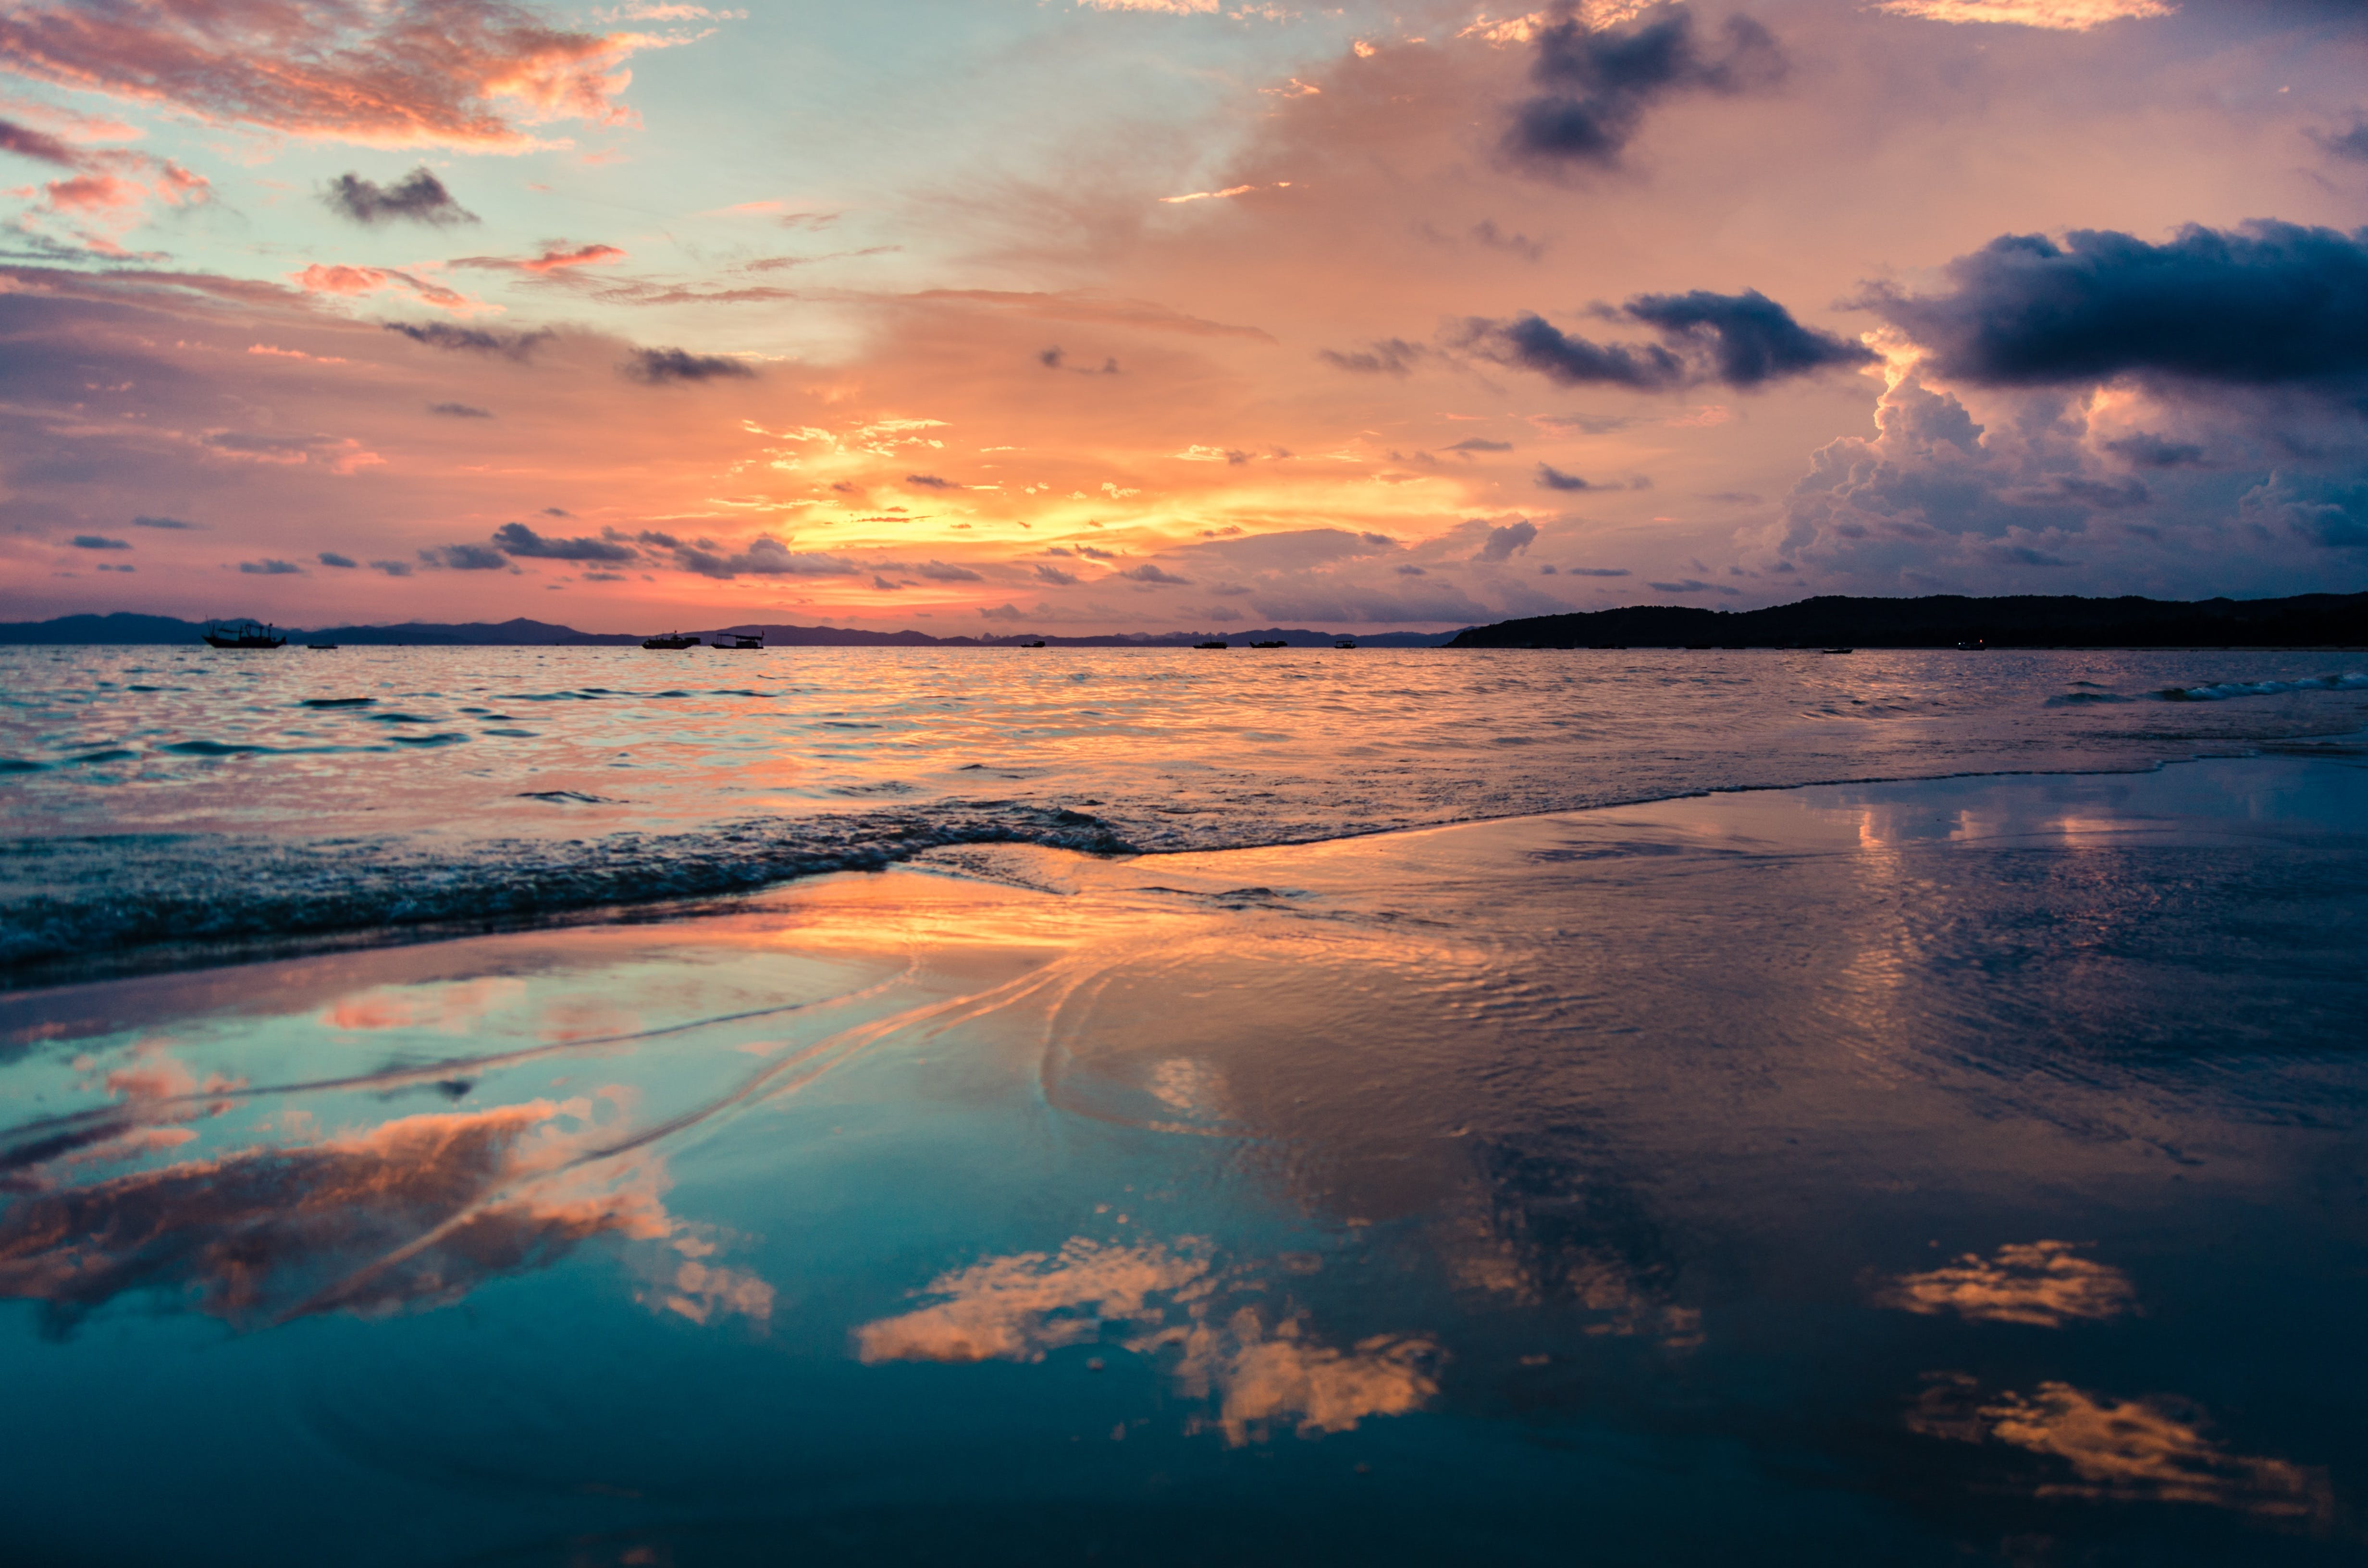 Seashore and Clouds Scenery